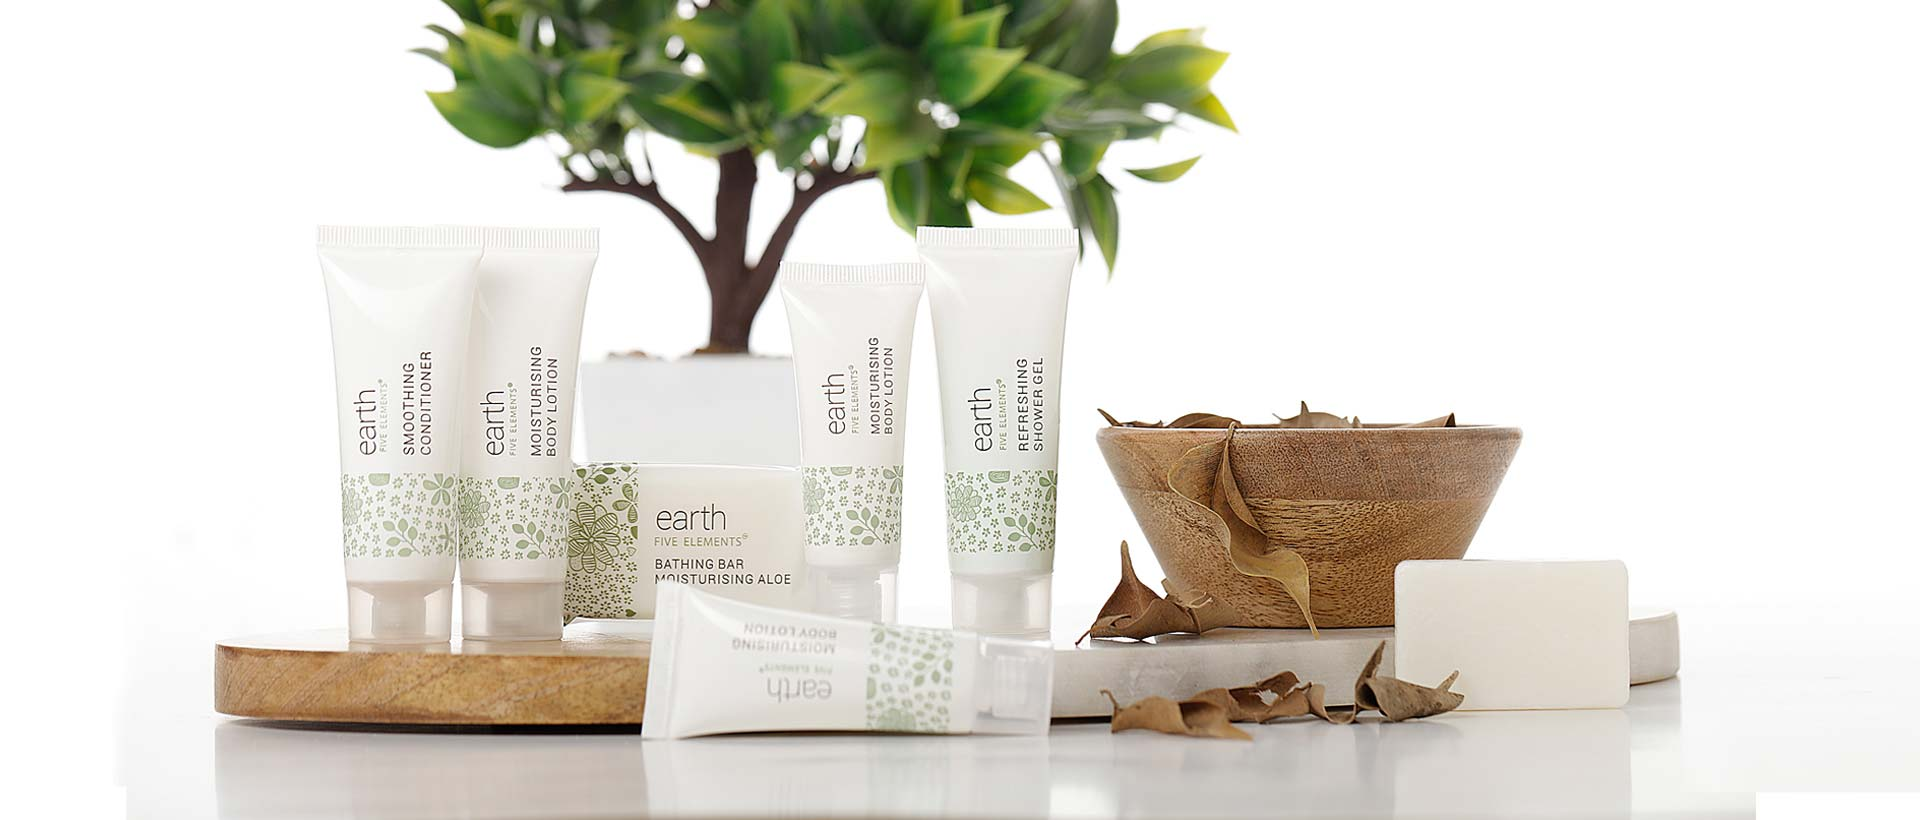 Luxury Hotel Toiletries India, Earth by Five Elements®, Kimirica Hunter International